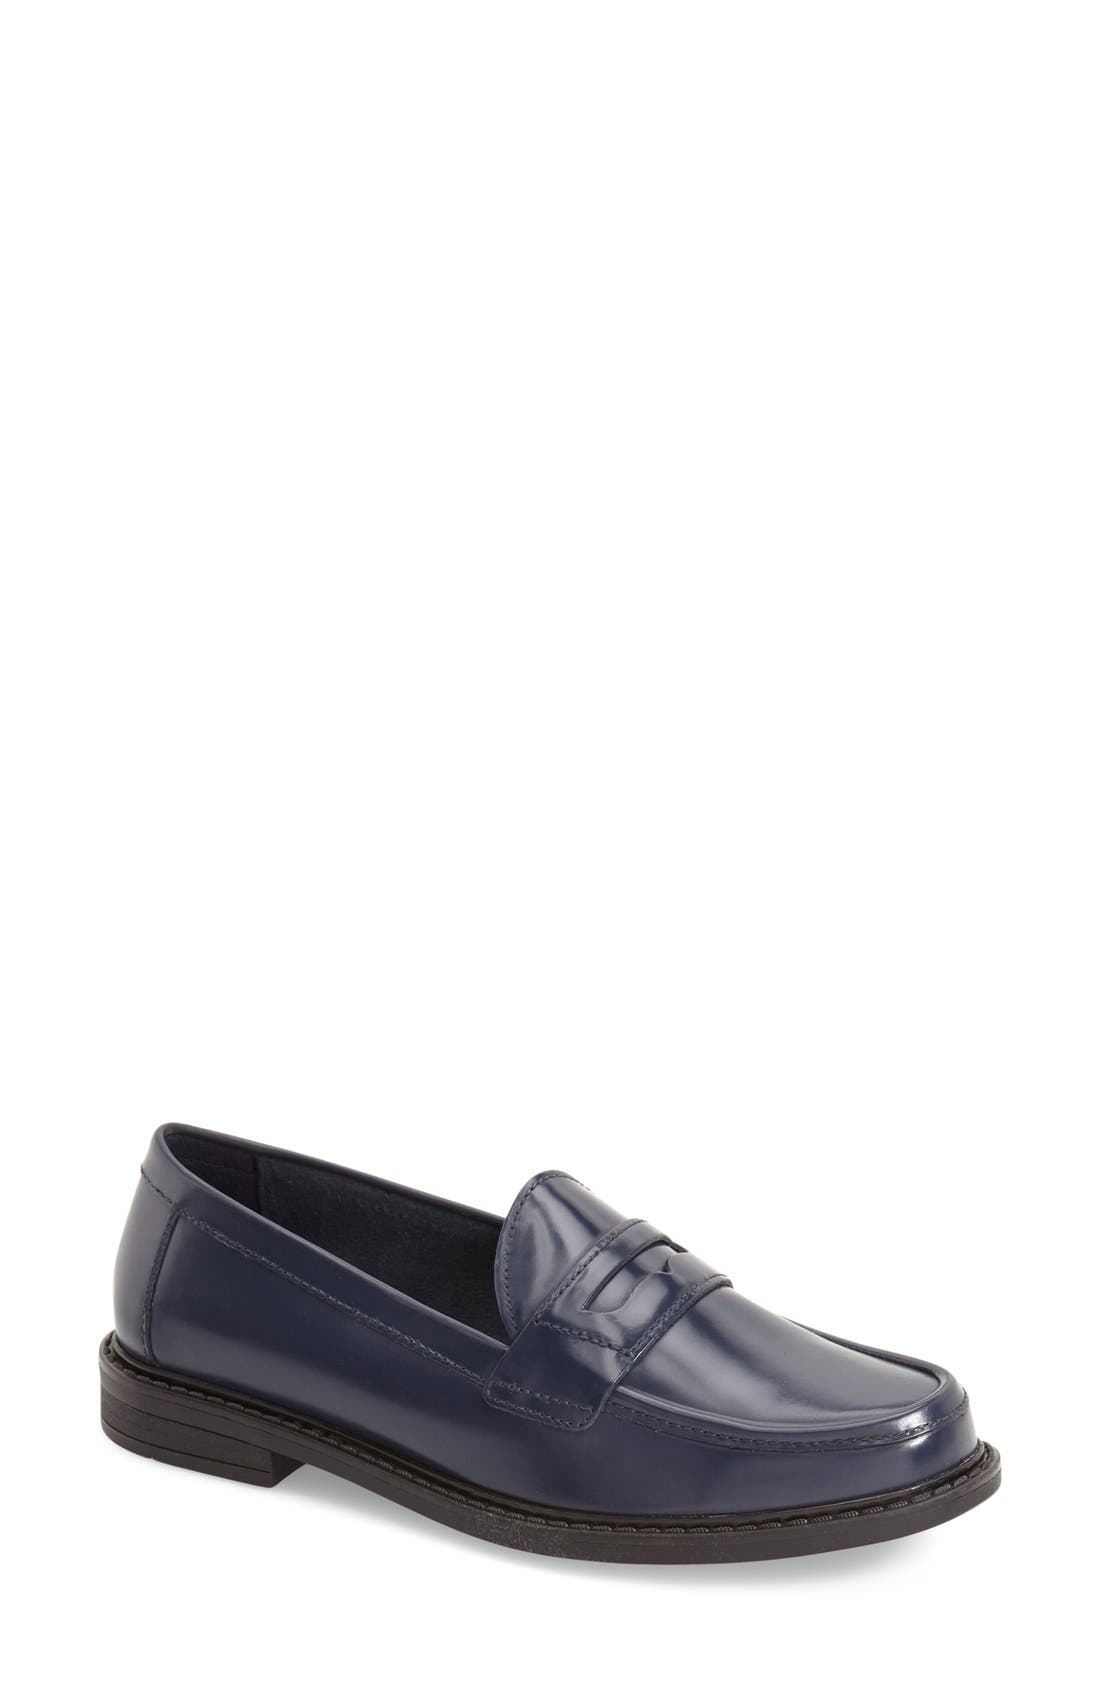 Main Image - Cole Haan 'Pinch Campus' Penny Loafer (Women)